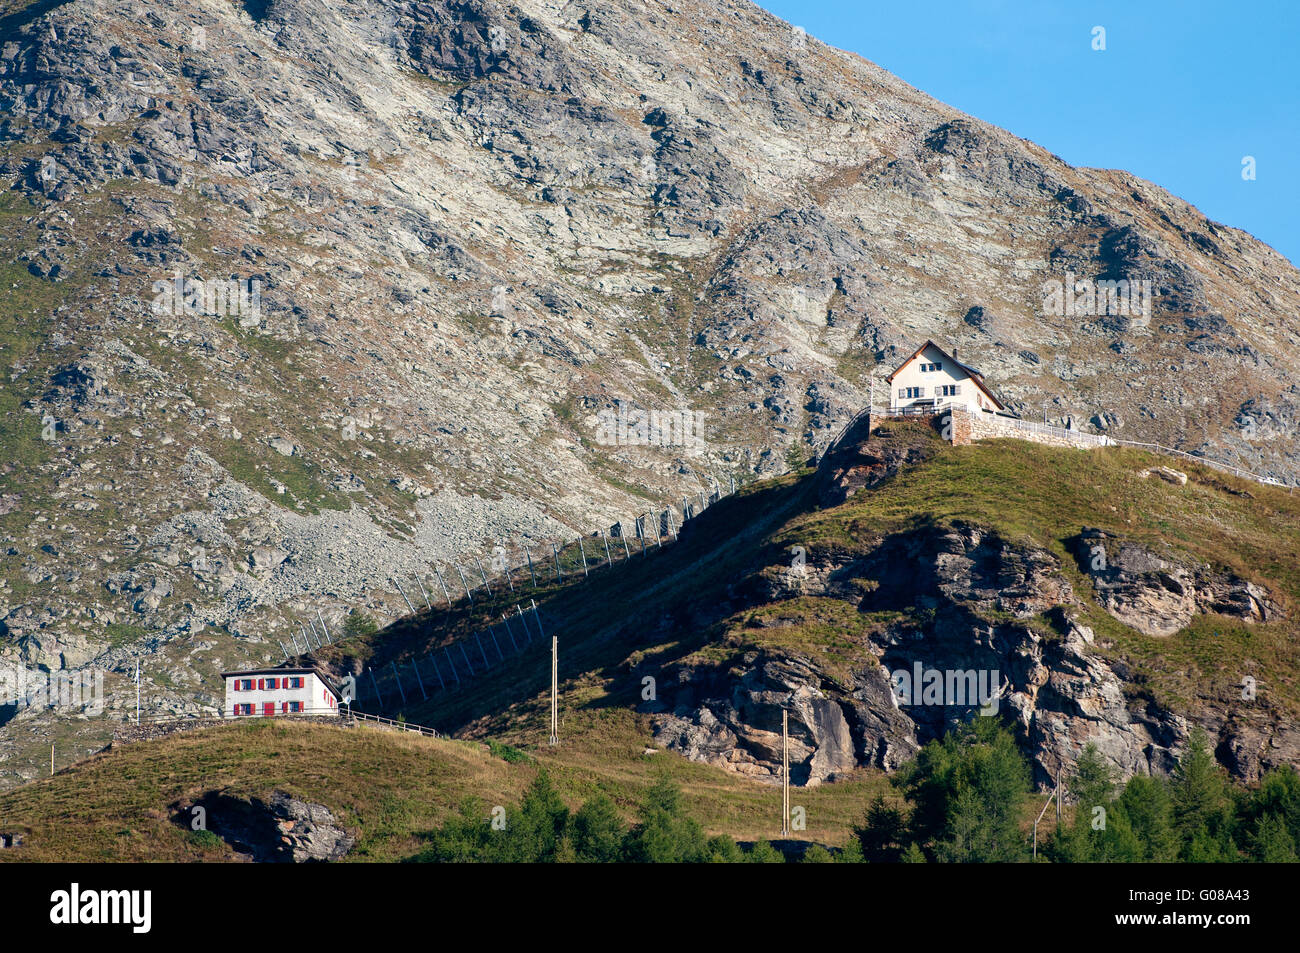 House in the Mountens - Stock Image